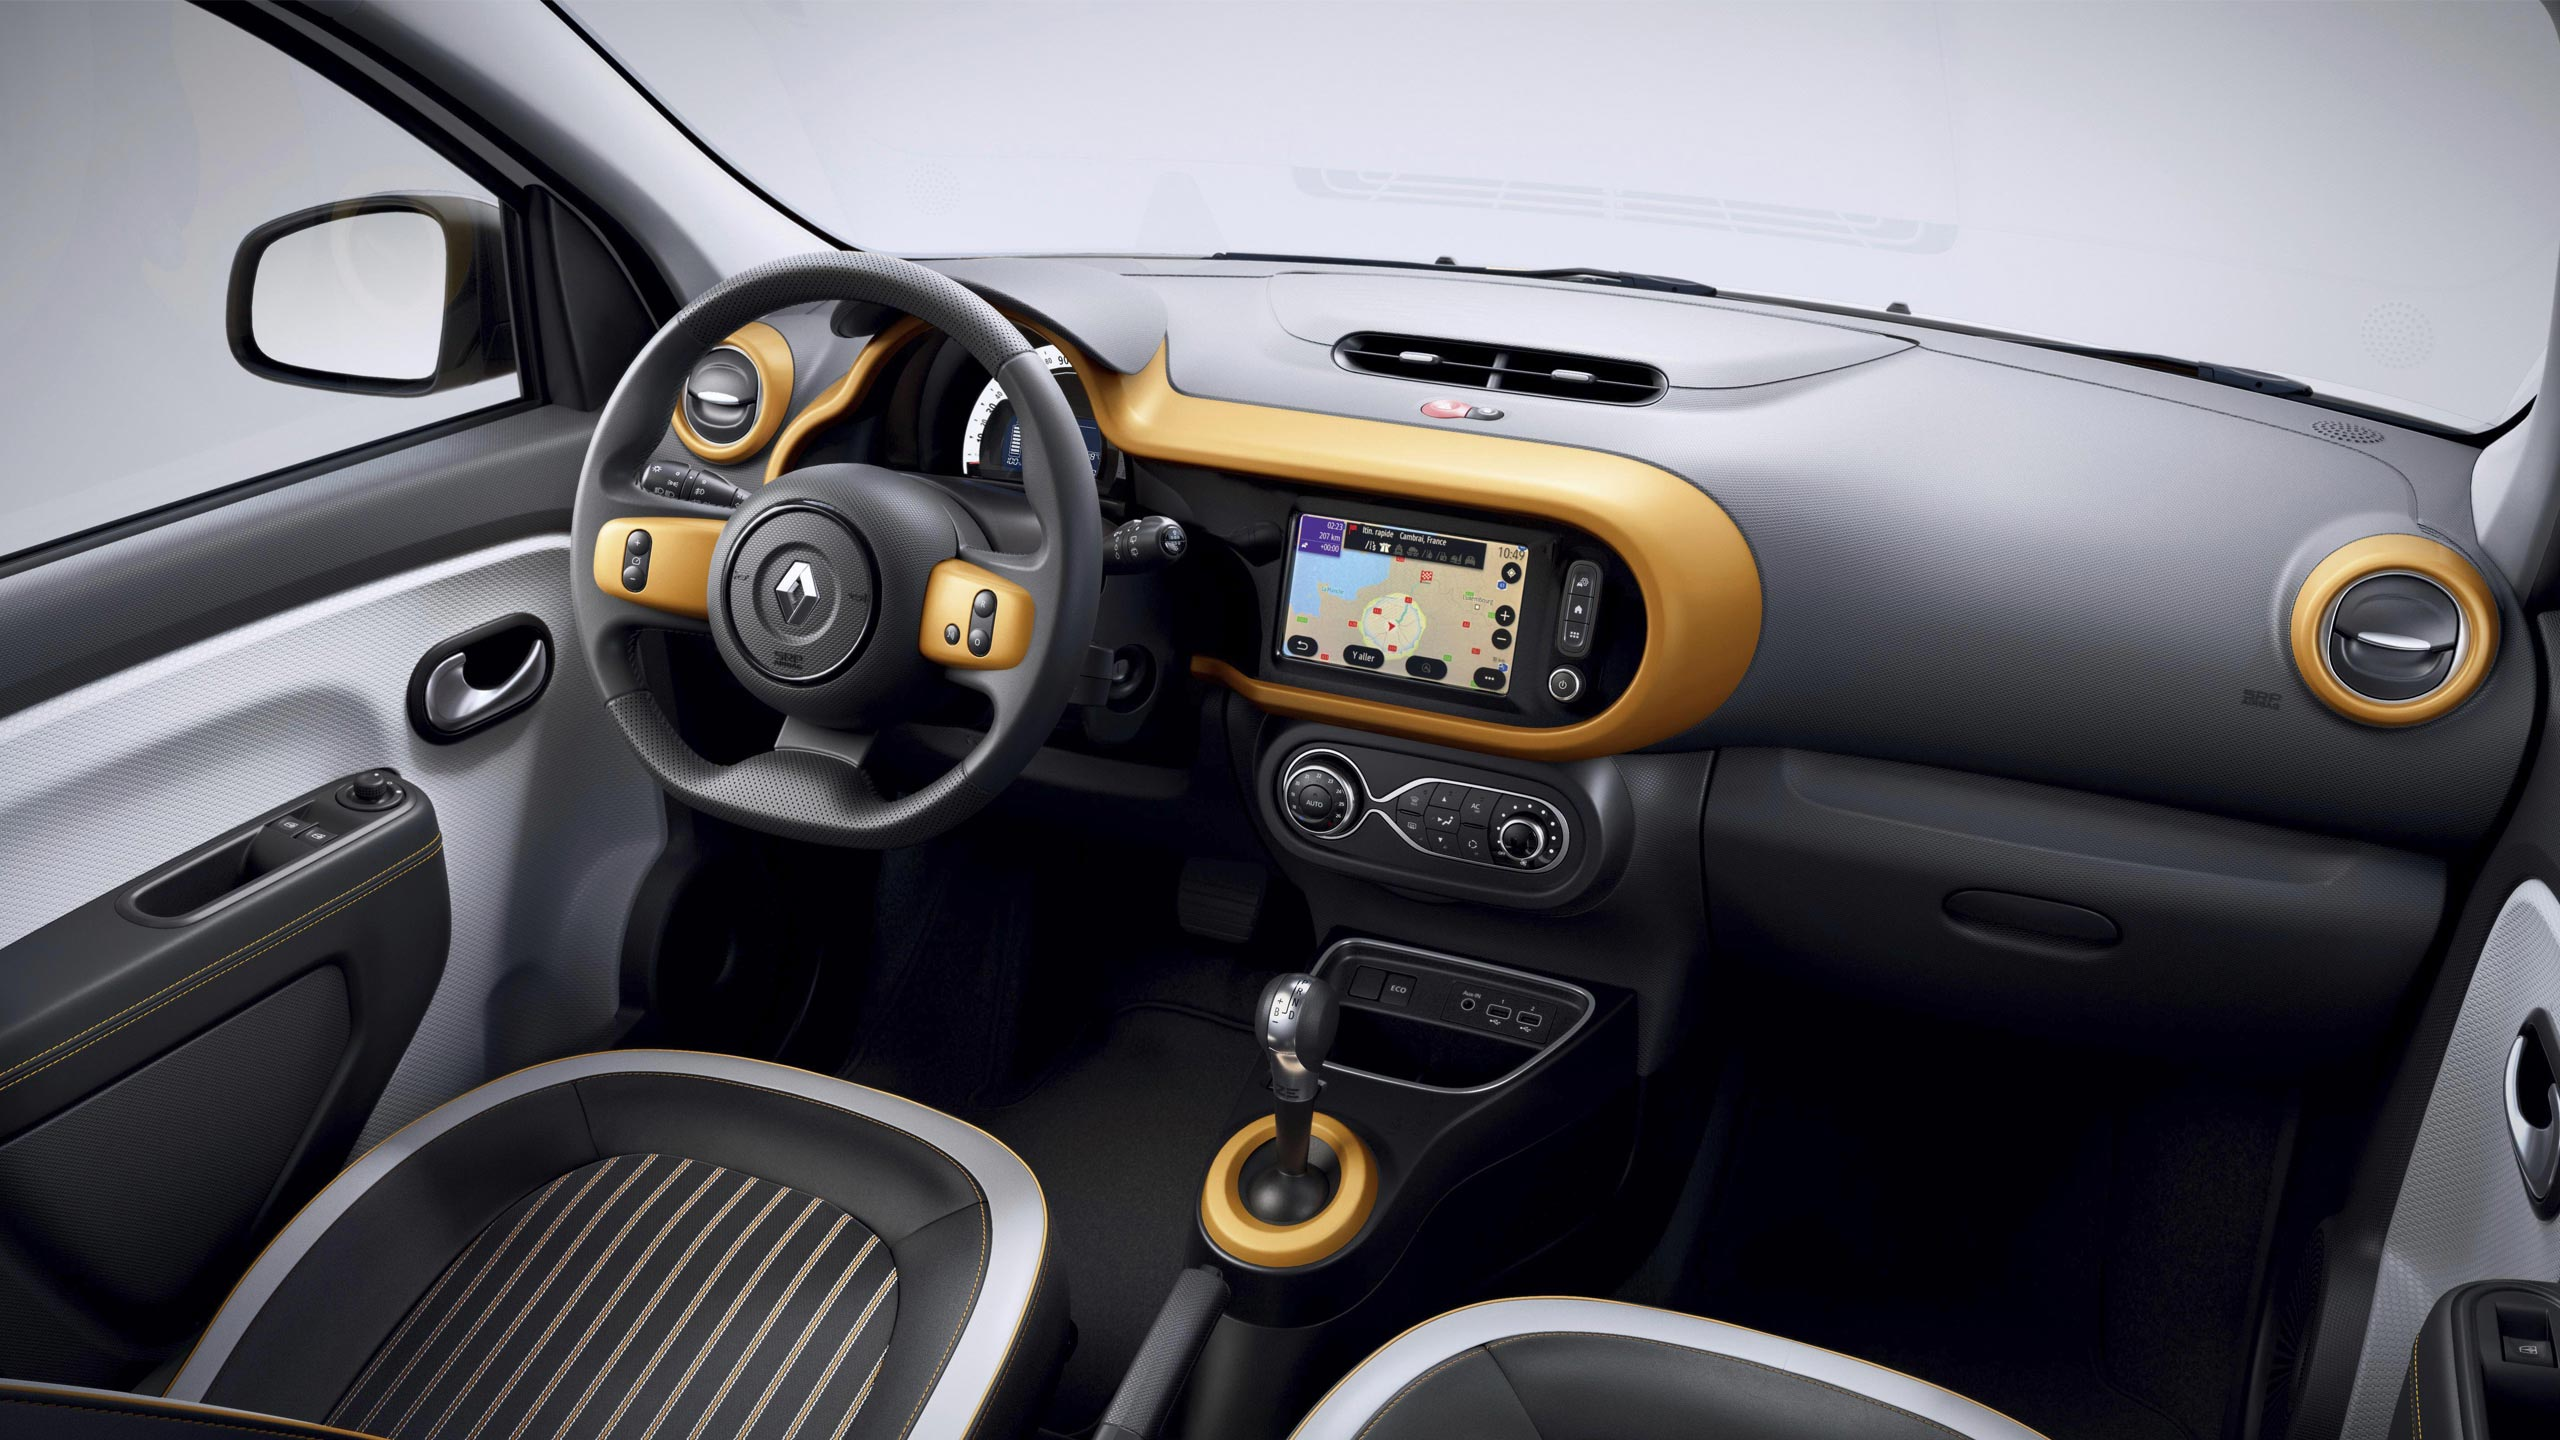 Renautl Twingo Electric